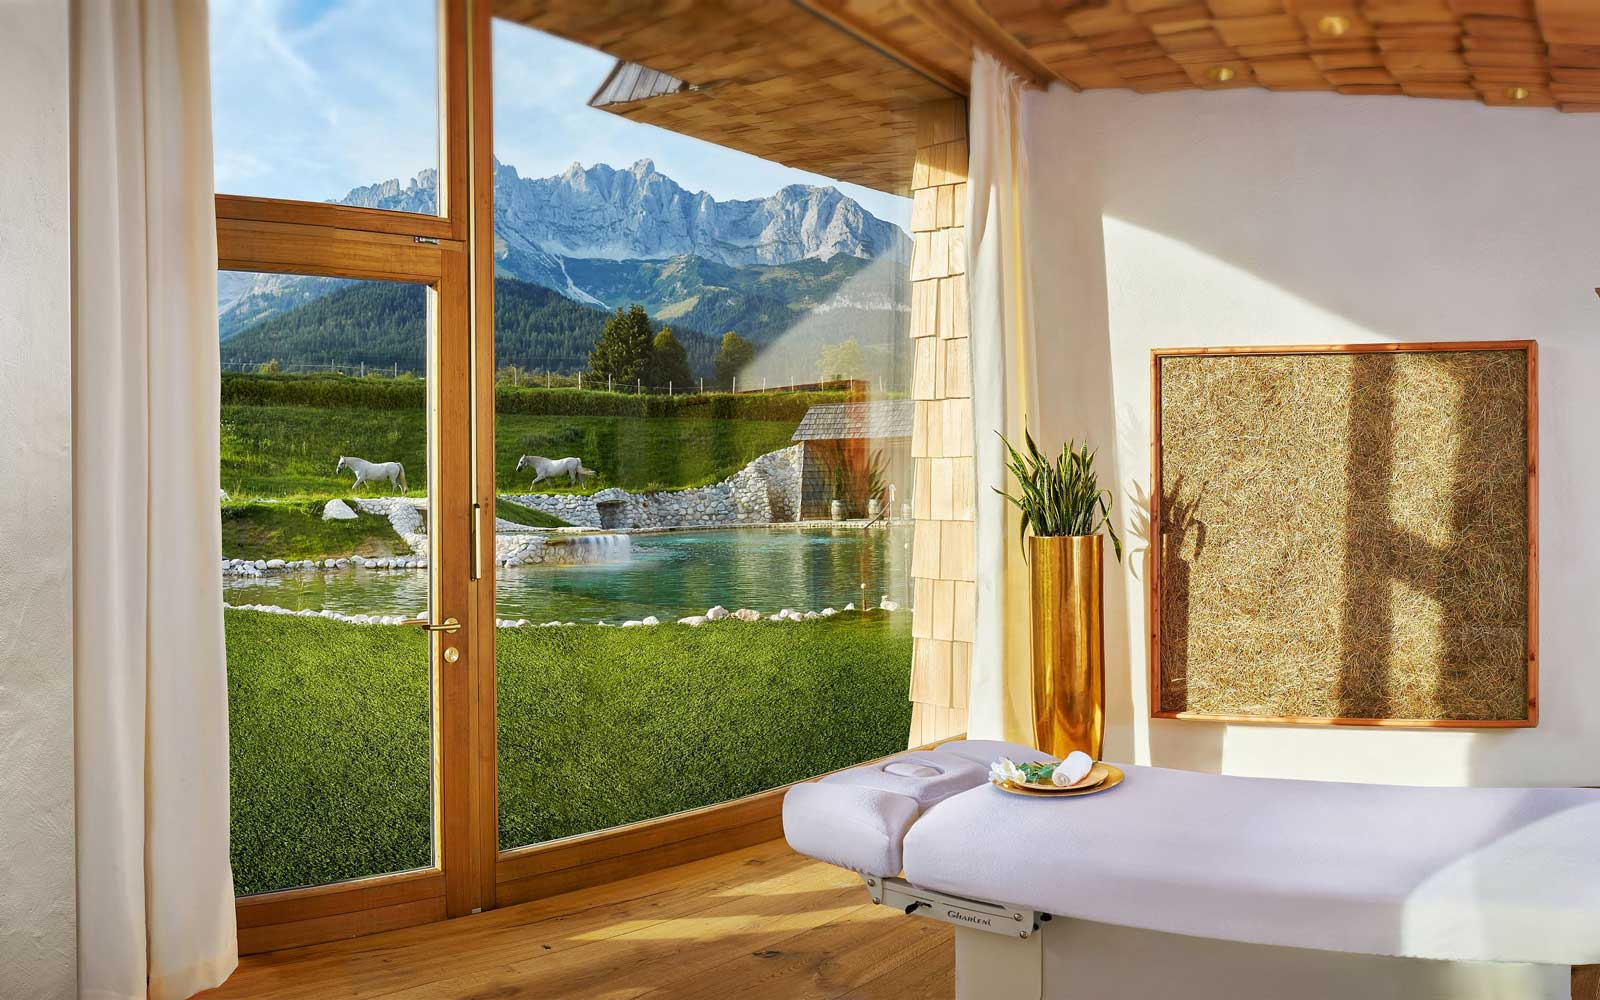 Window view from Green Spa Resort in Stanglwirt, Austria